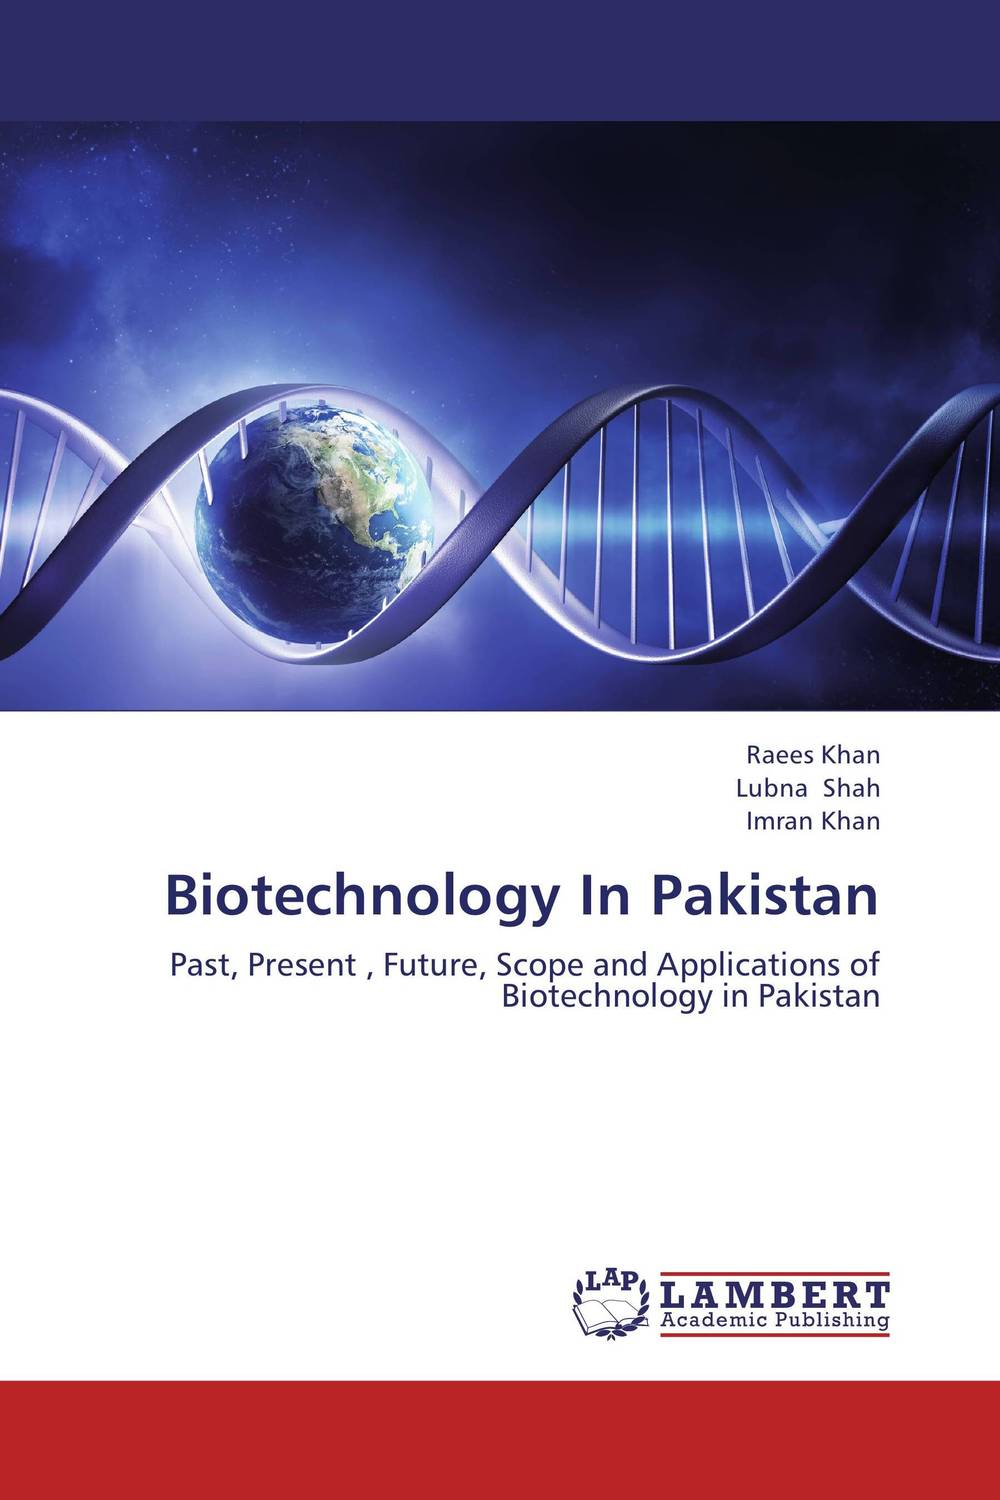 Biotechnology In Pakistan pakistan on the brink the future of pakistan afghanistan and the west